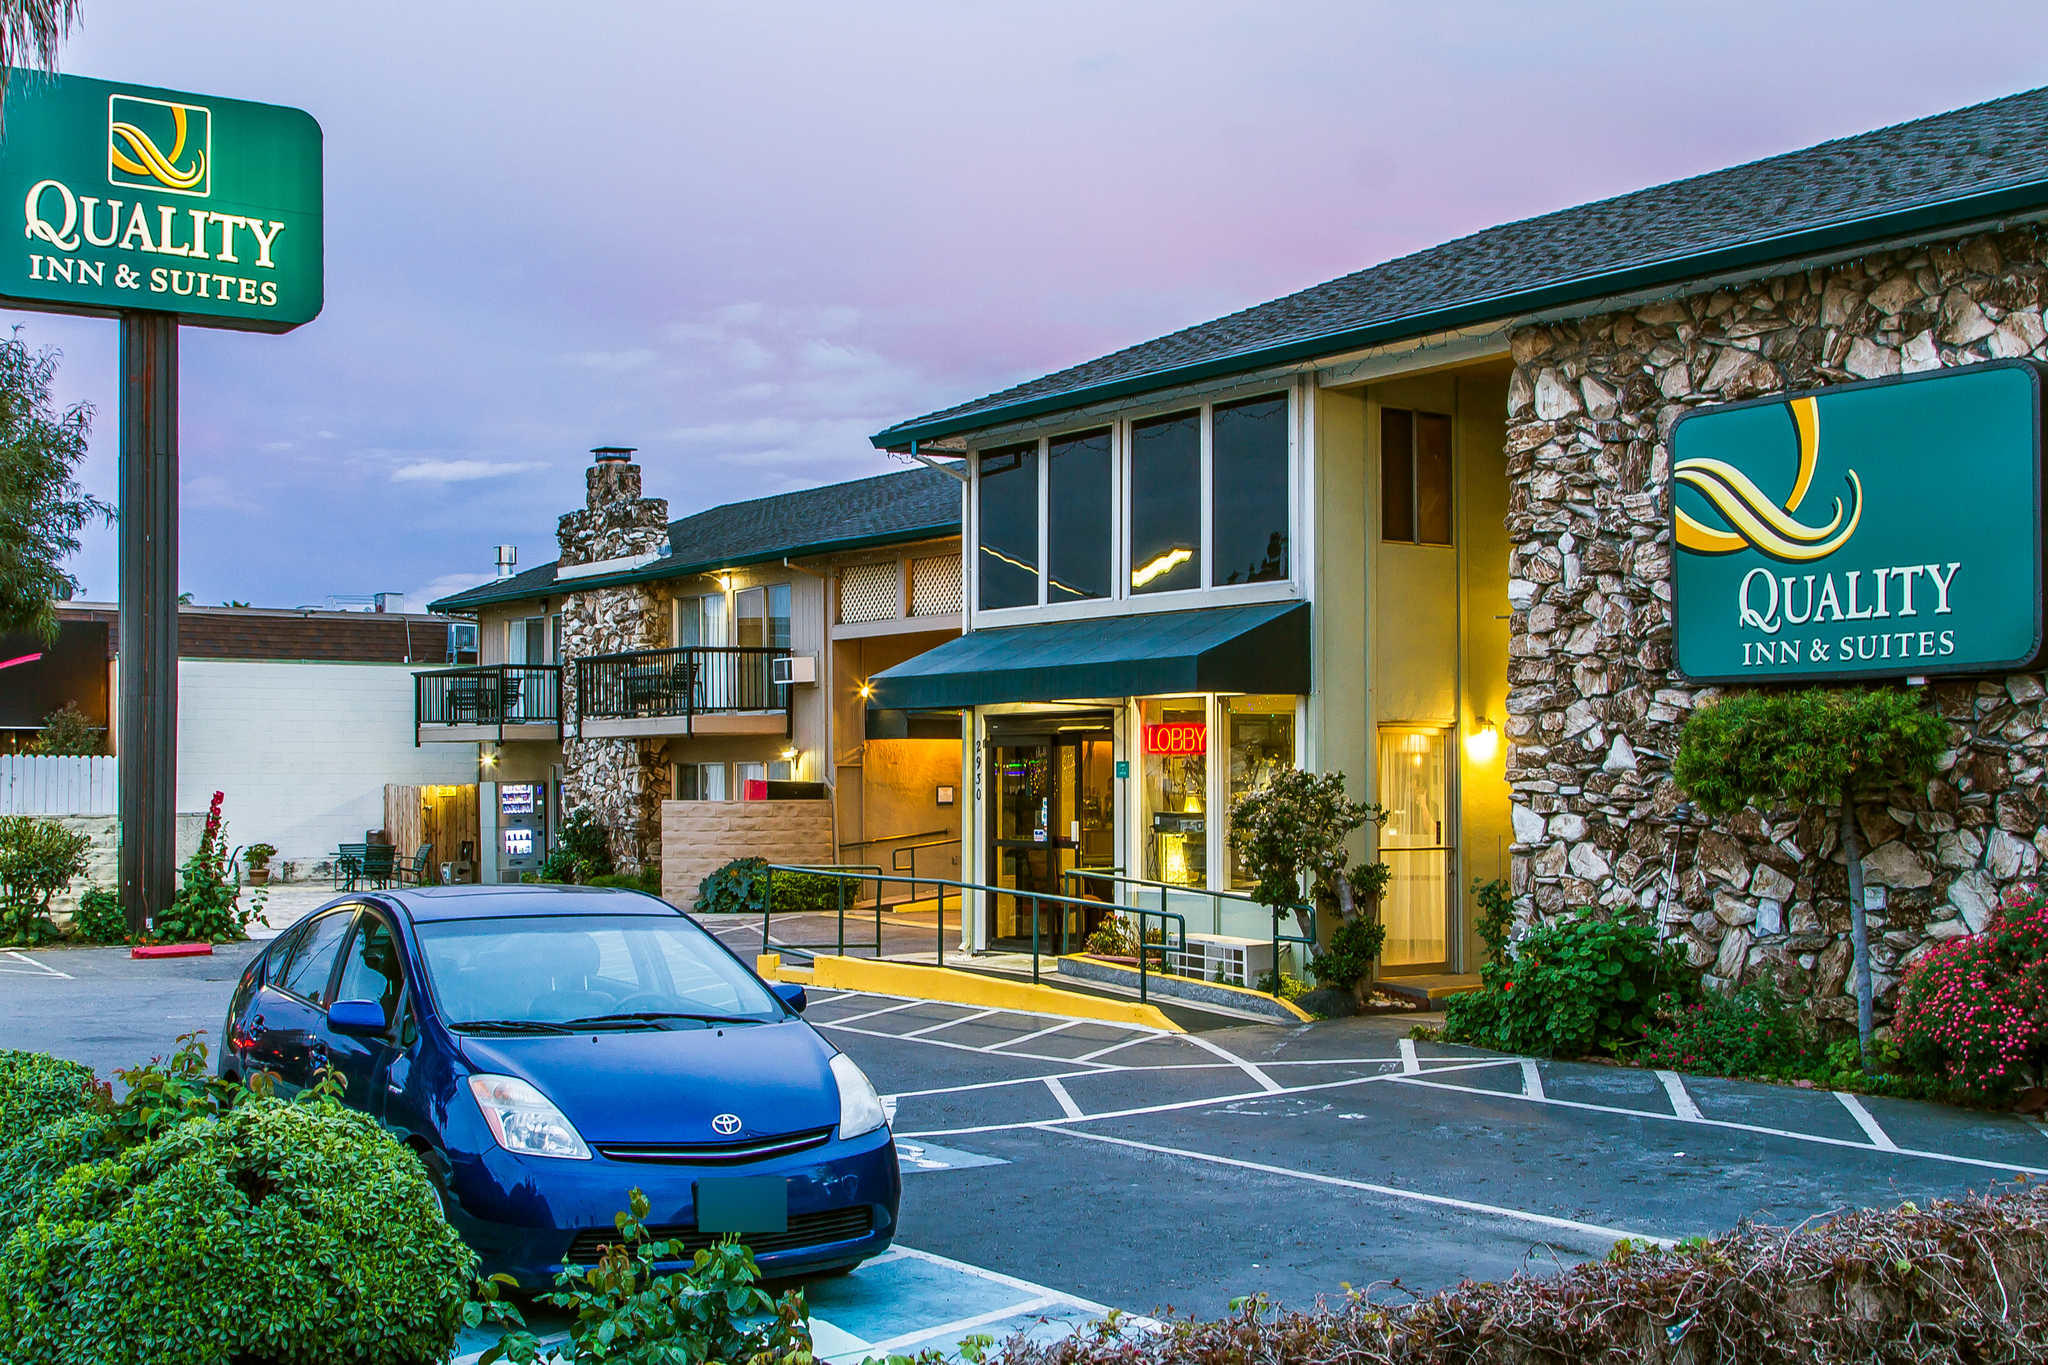 Quality Inn & Suites Silicon Valley image 1